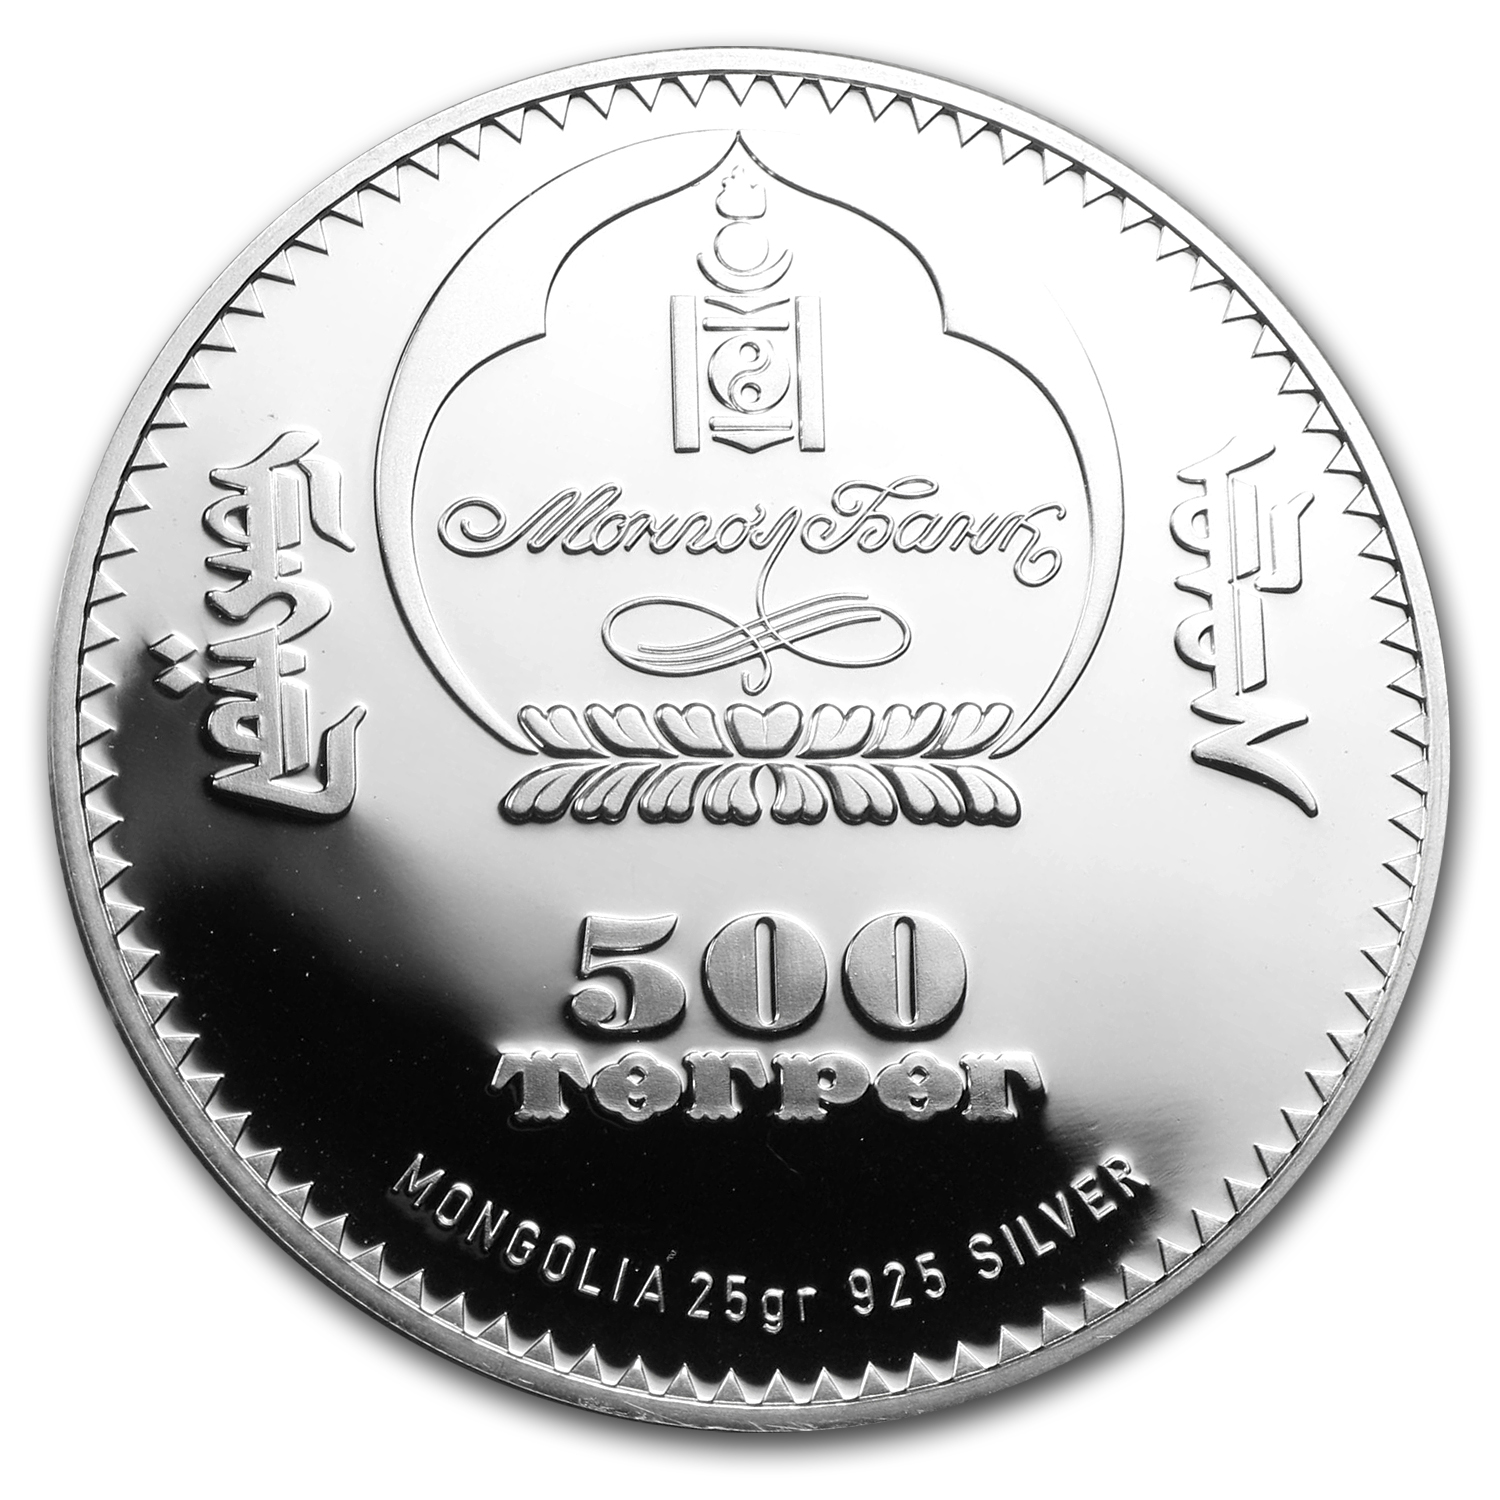 2008 Mongolia Silver 500 Togrog New 7 Wonders Christ Redeemer